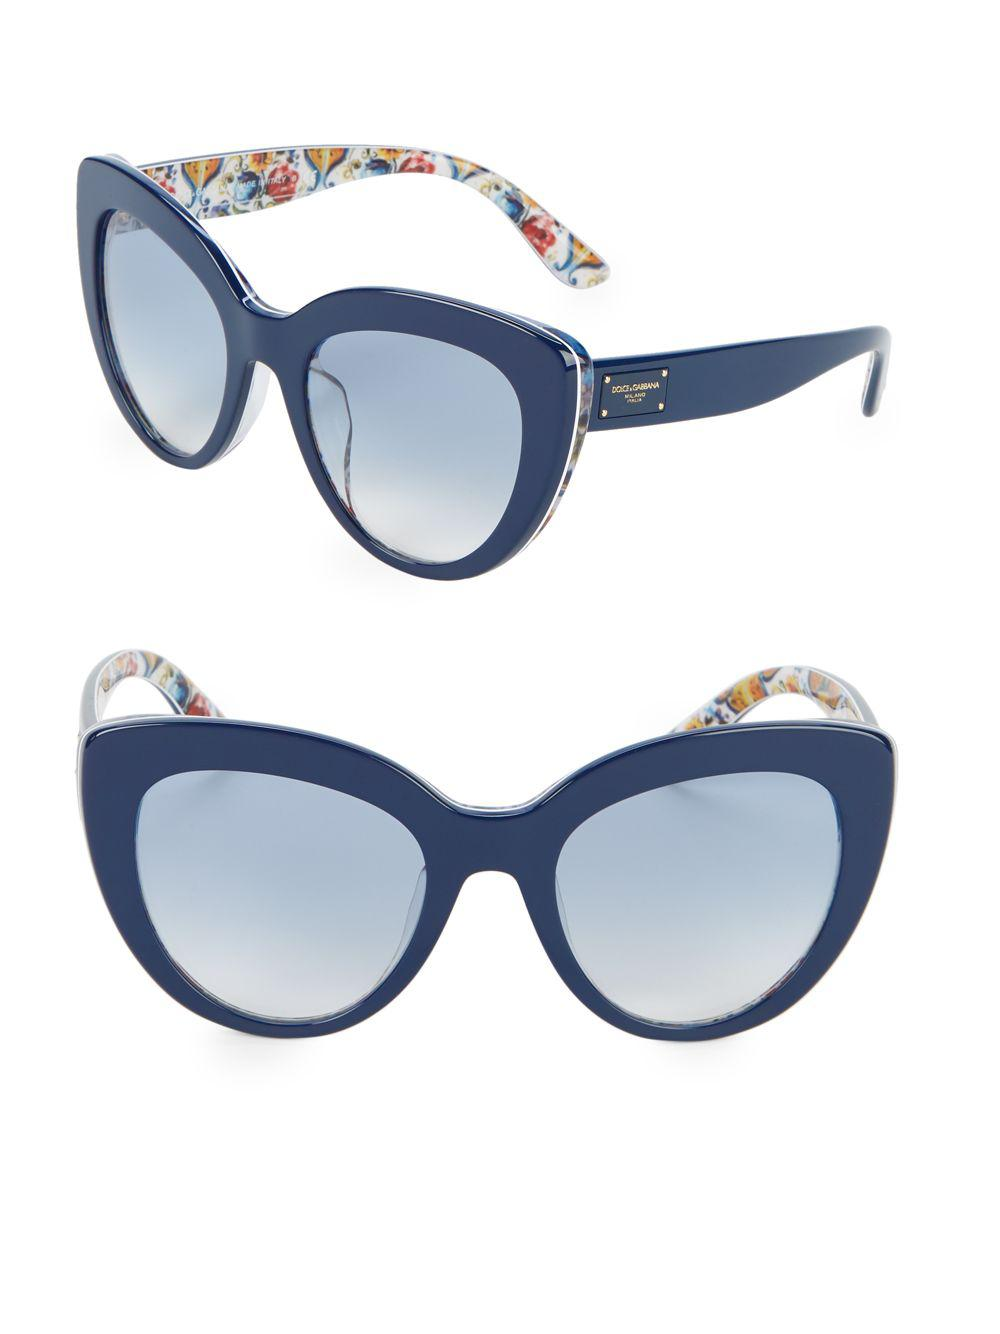 da1dff9f9725 Dolce   Gabbana 53mm Tile Print Cateye Sunglasses in Blue - Lyst